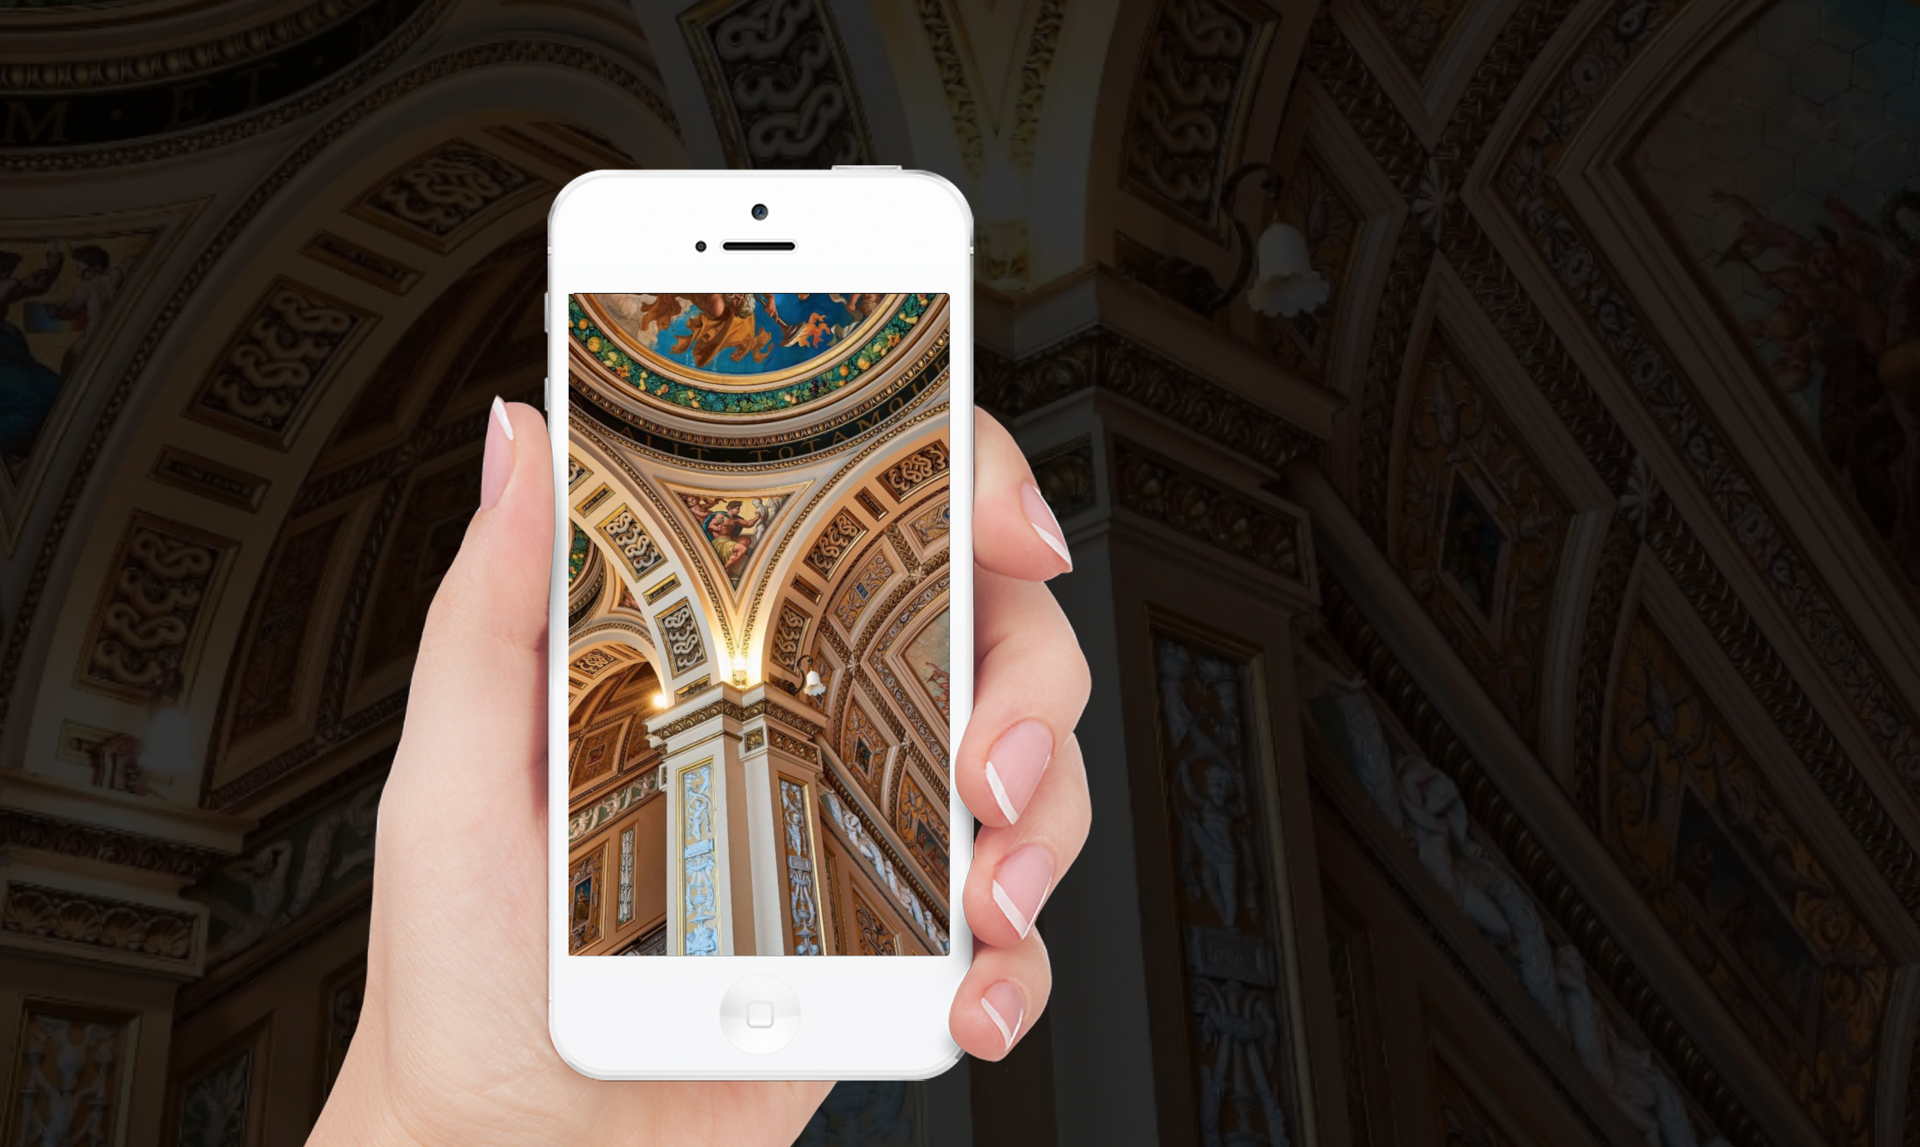 The V&A Mobile Visitor Experience